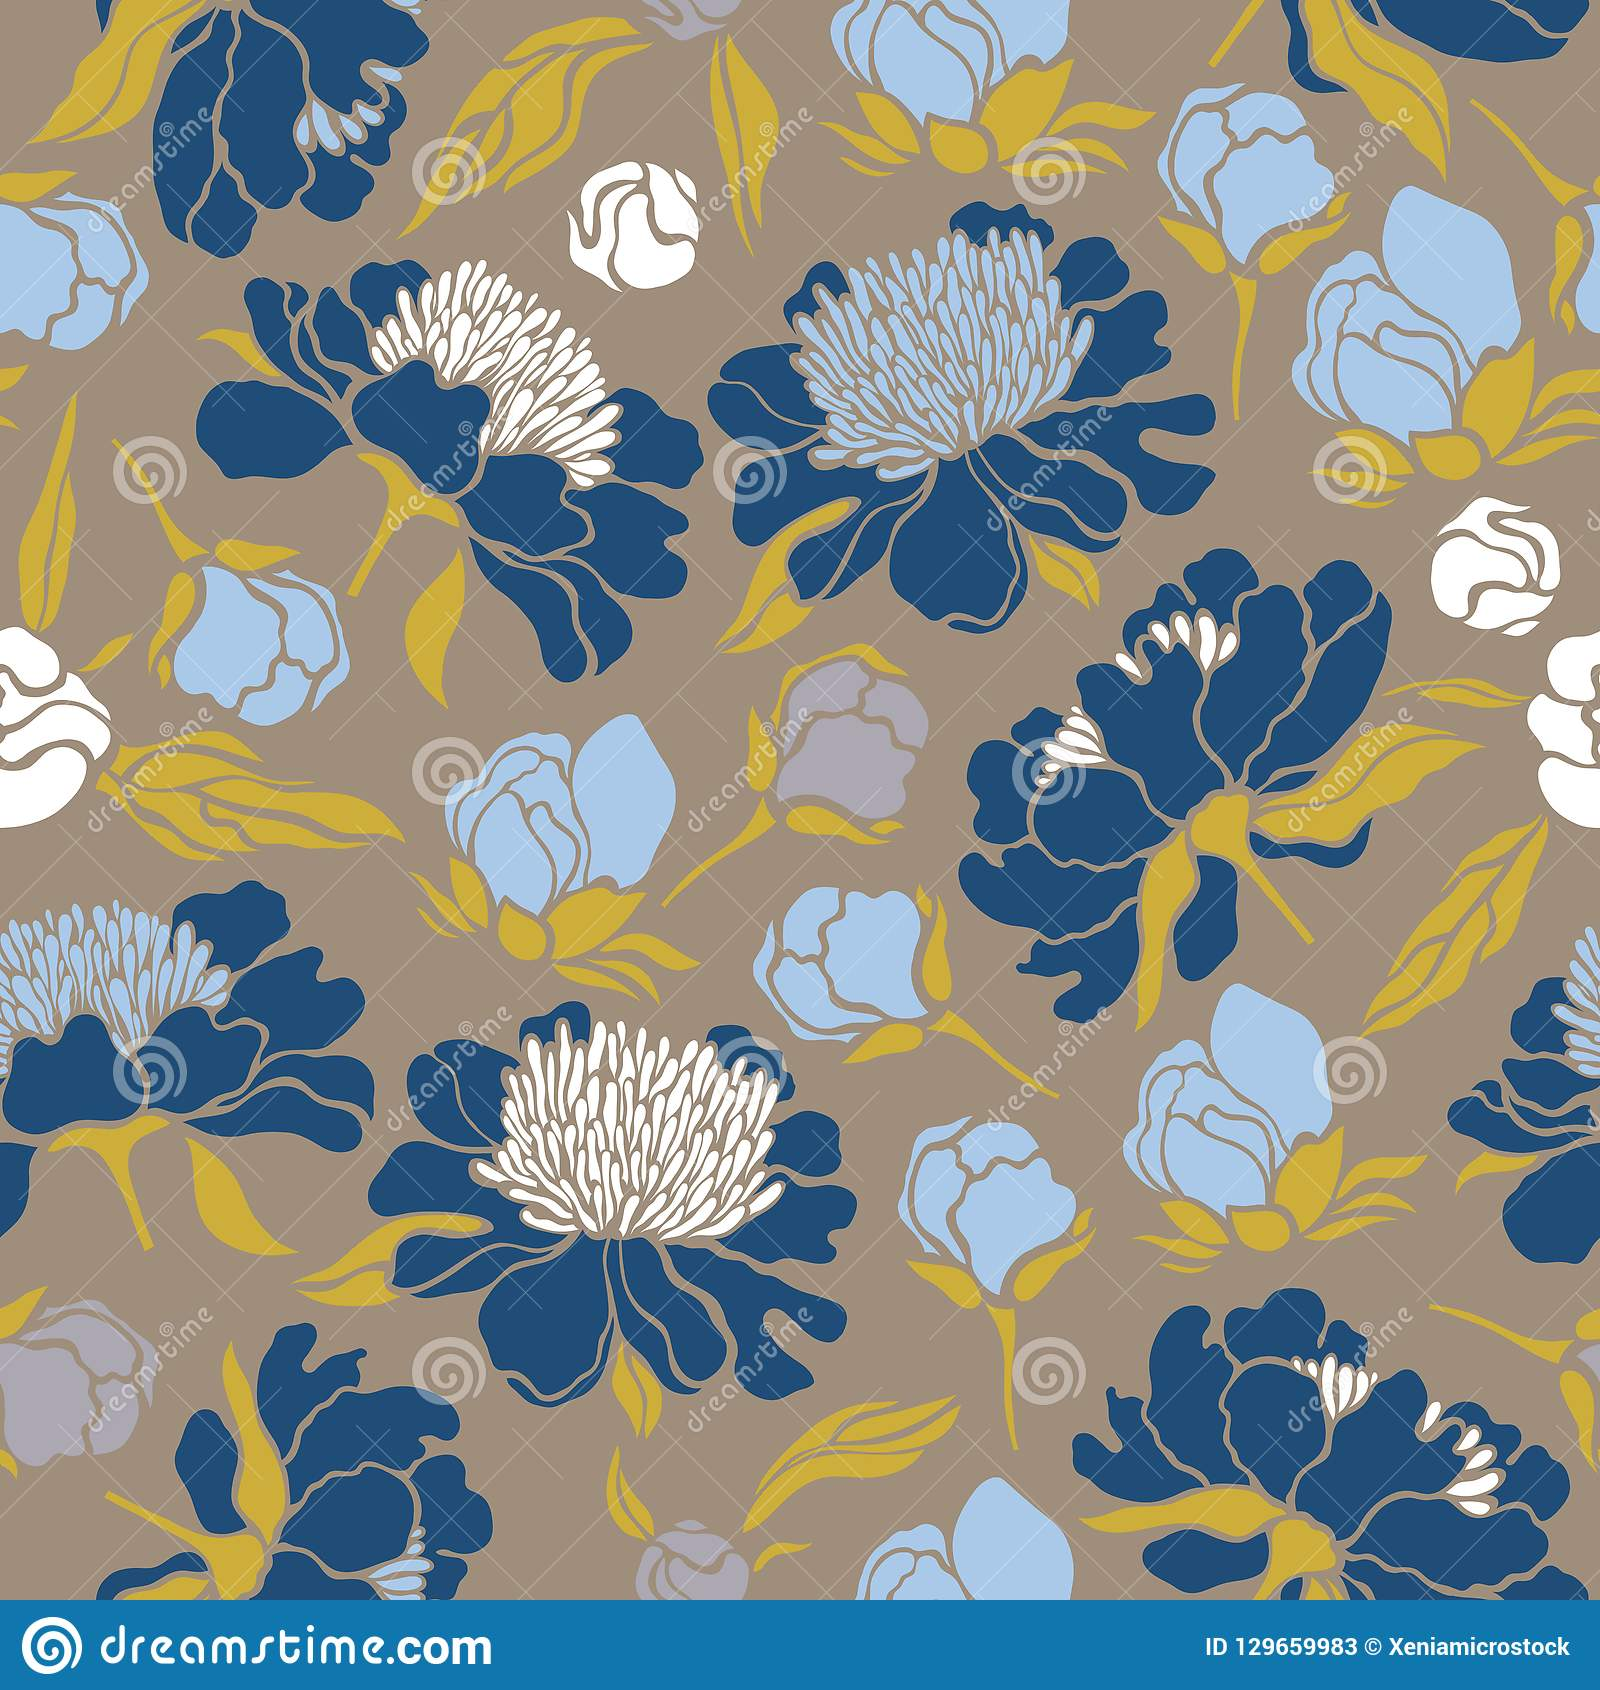 Seamless floral pattern with peonies. Texture with meadow flora for surfaces, paper, wrappers, backgrounds, scrapbooking.